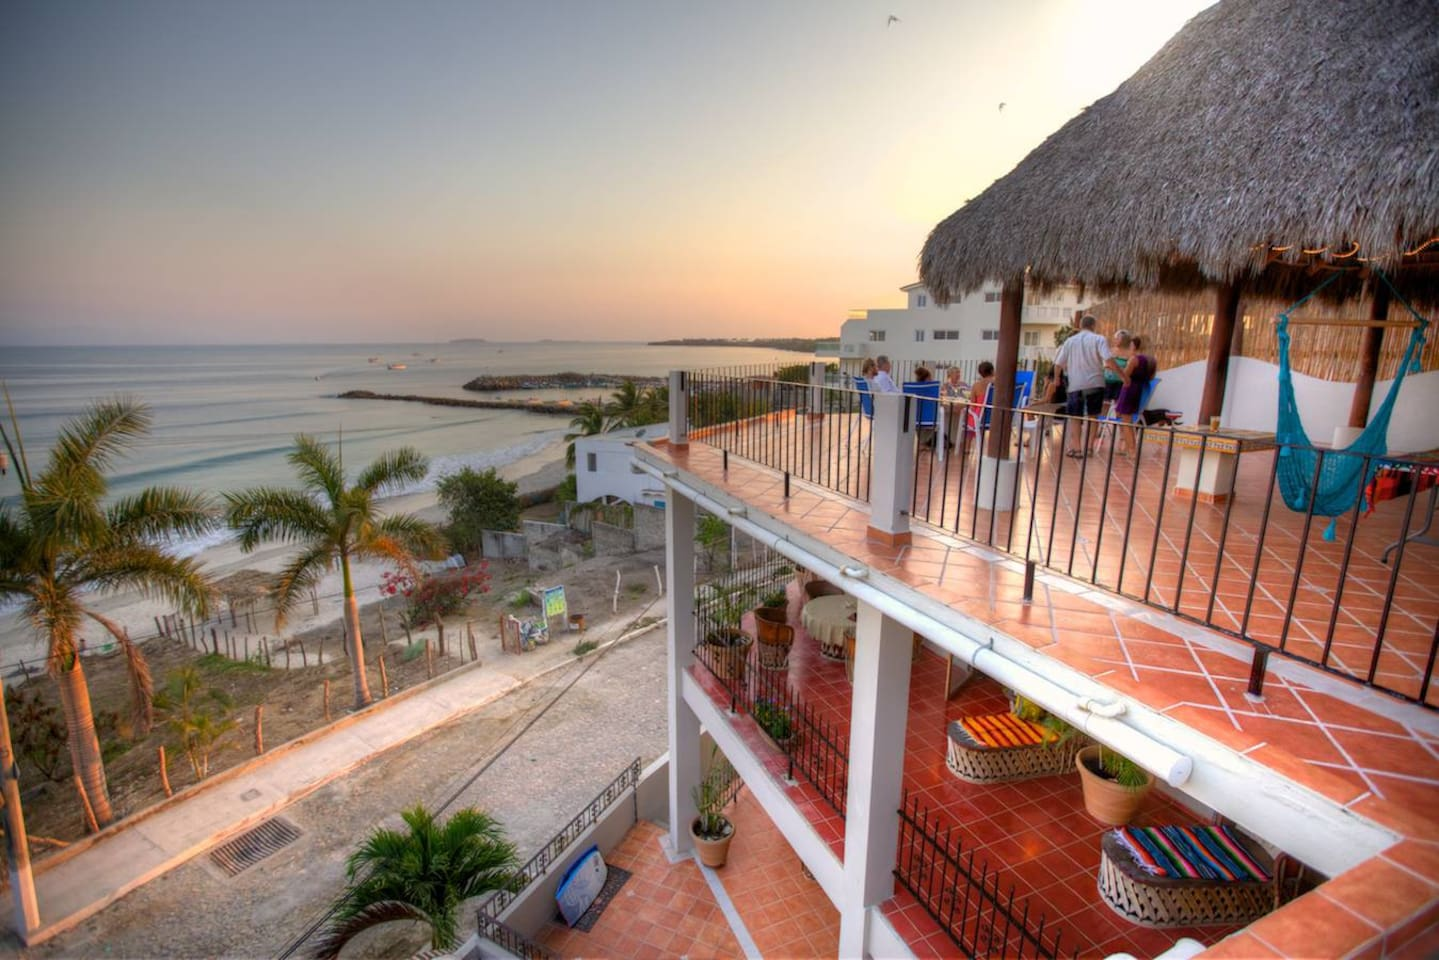 Enjoy the best views in Punta de Mita from your private terrace or from our exclusive roof top deck.